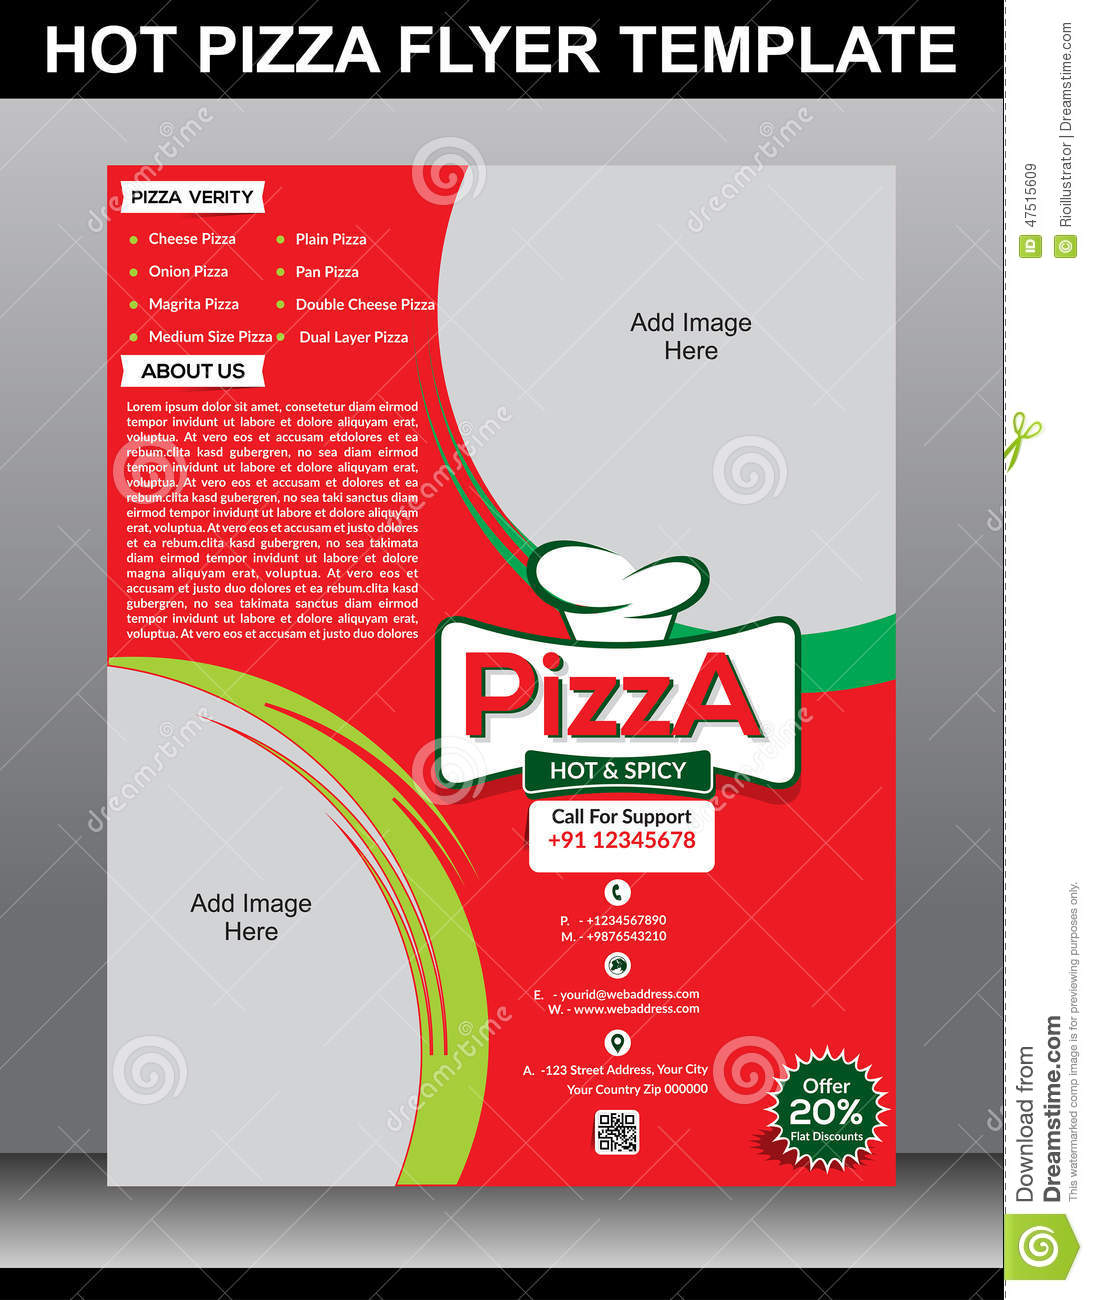 hot pizza flyer template stock vector image 47515609 hot pizza flyer template